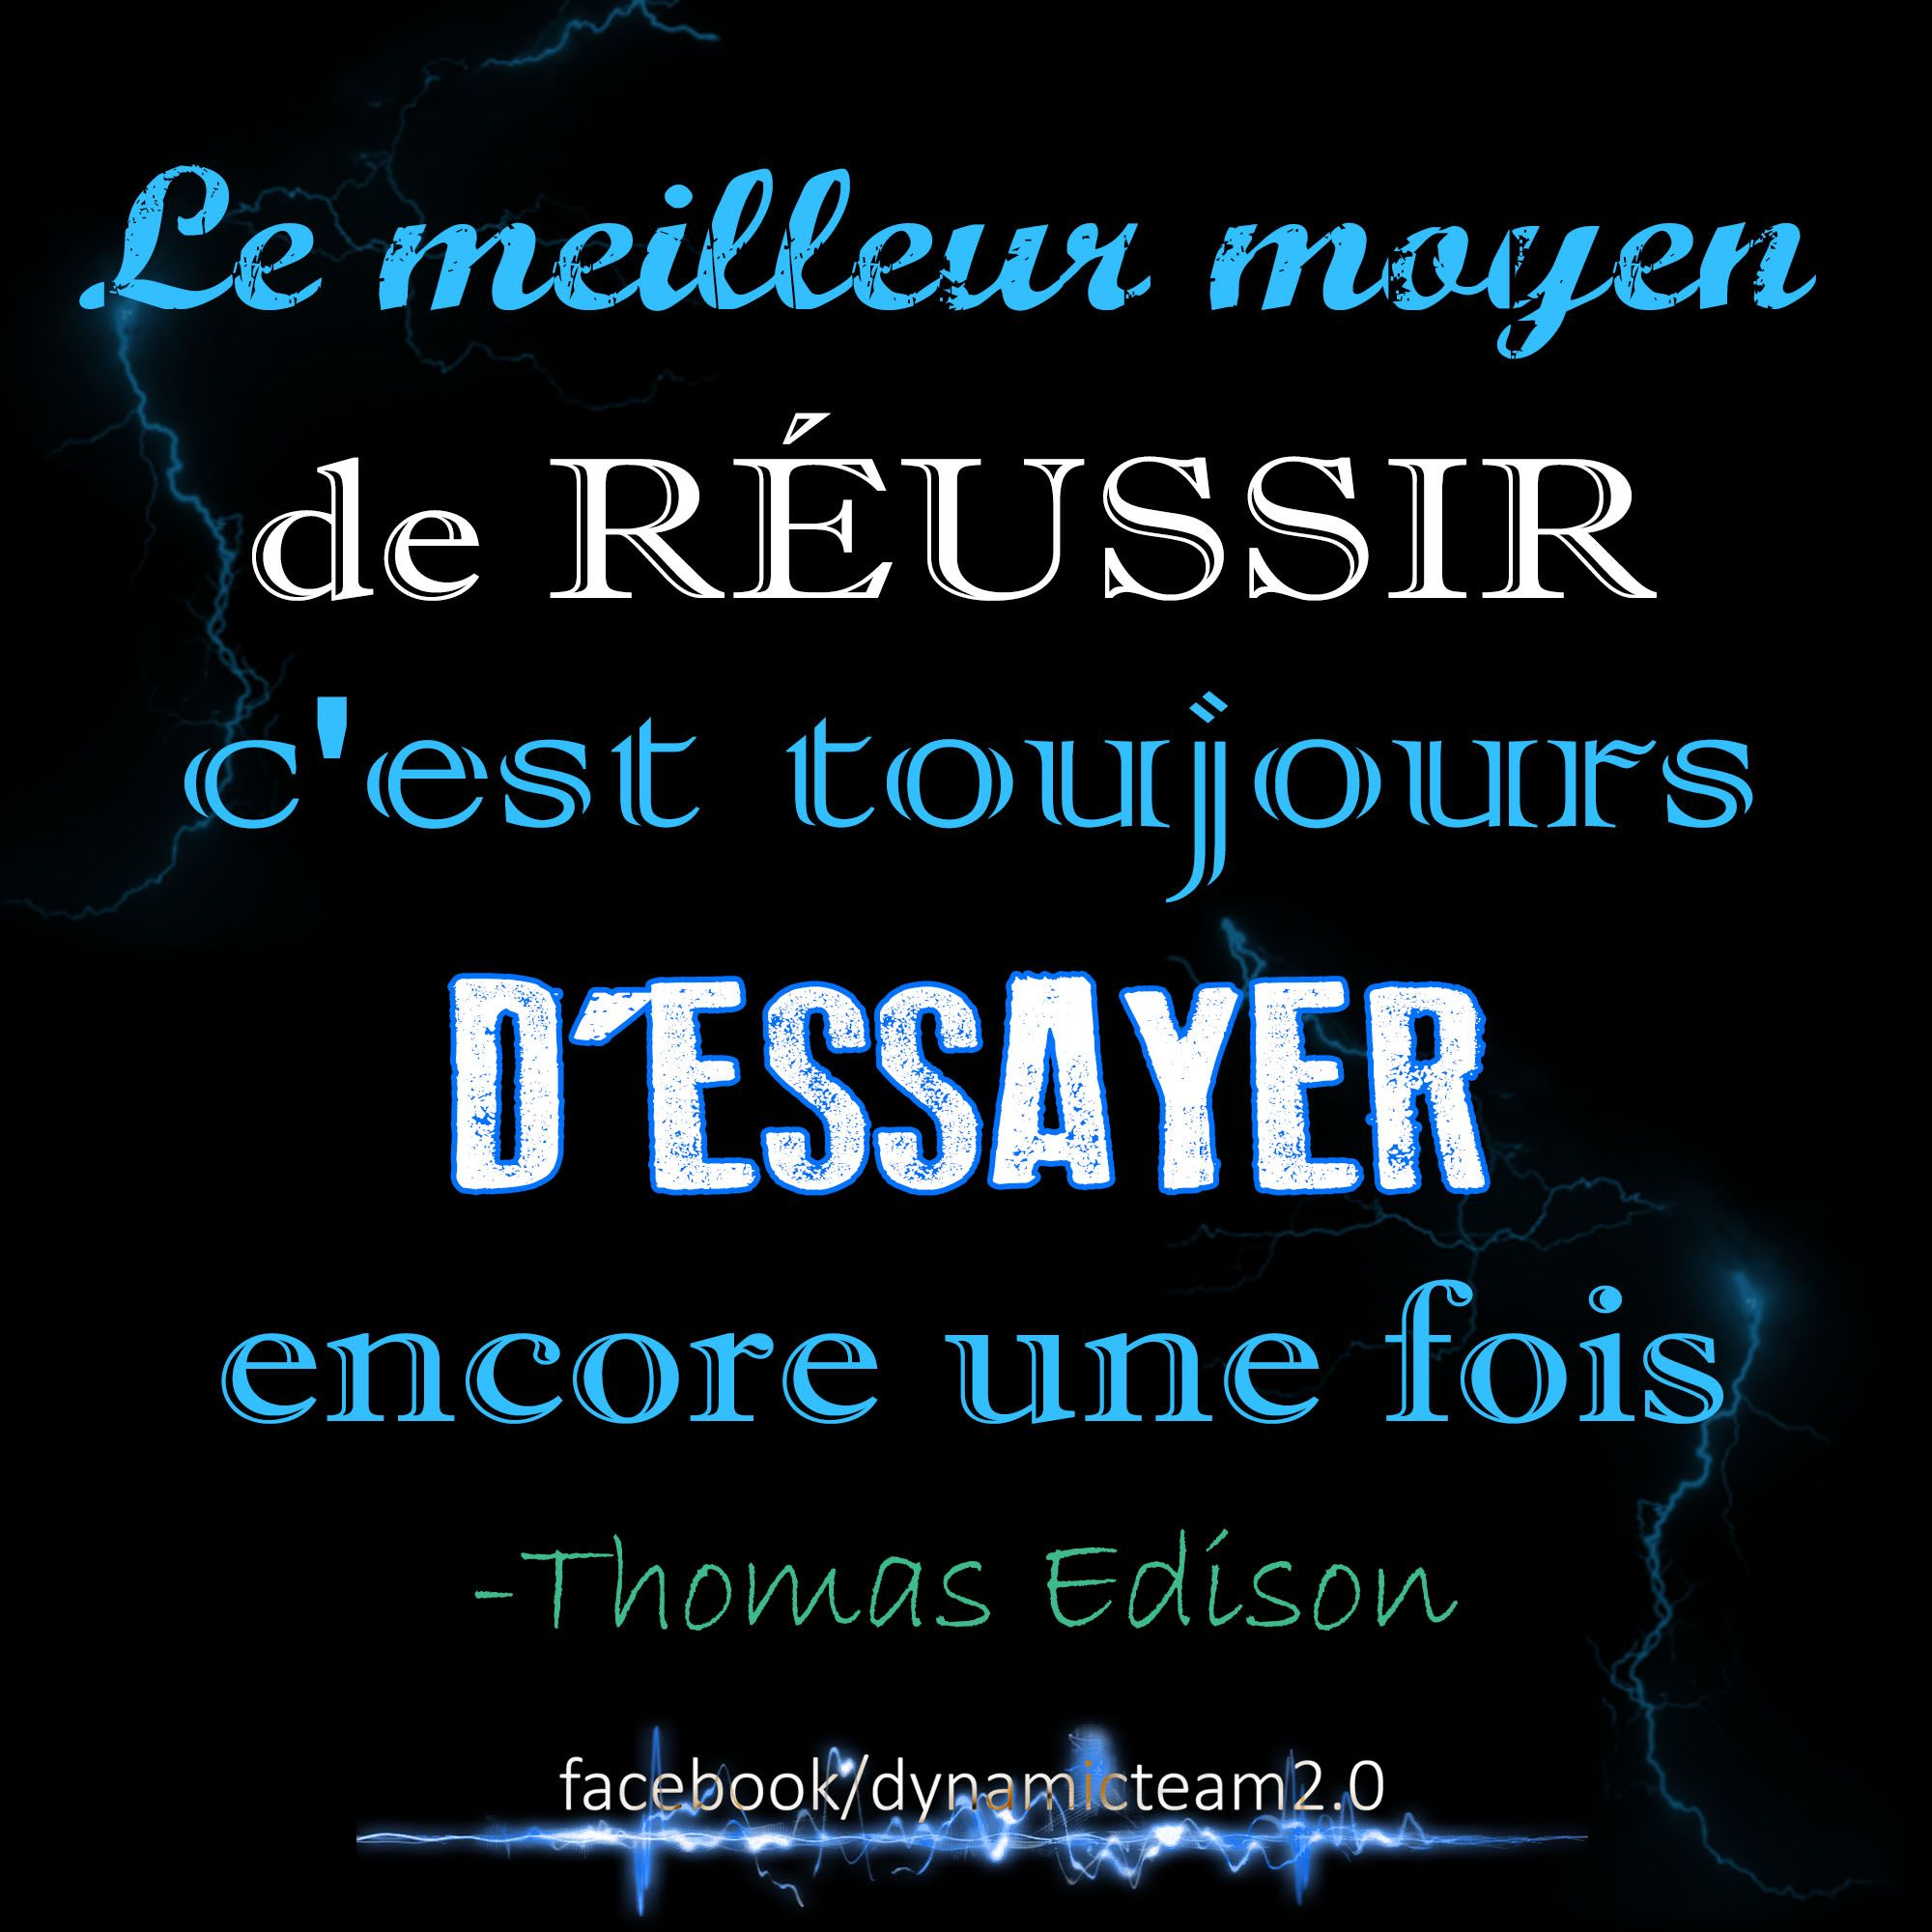 003 Essayer Essay Impressive French Verb Conjugation Definition Synonymes In English Full